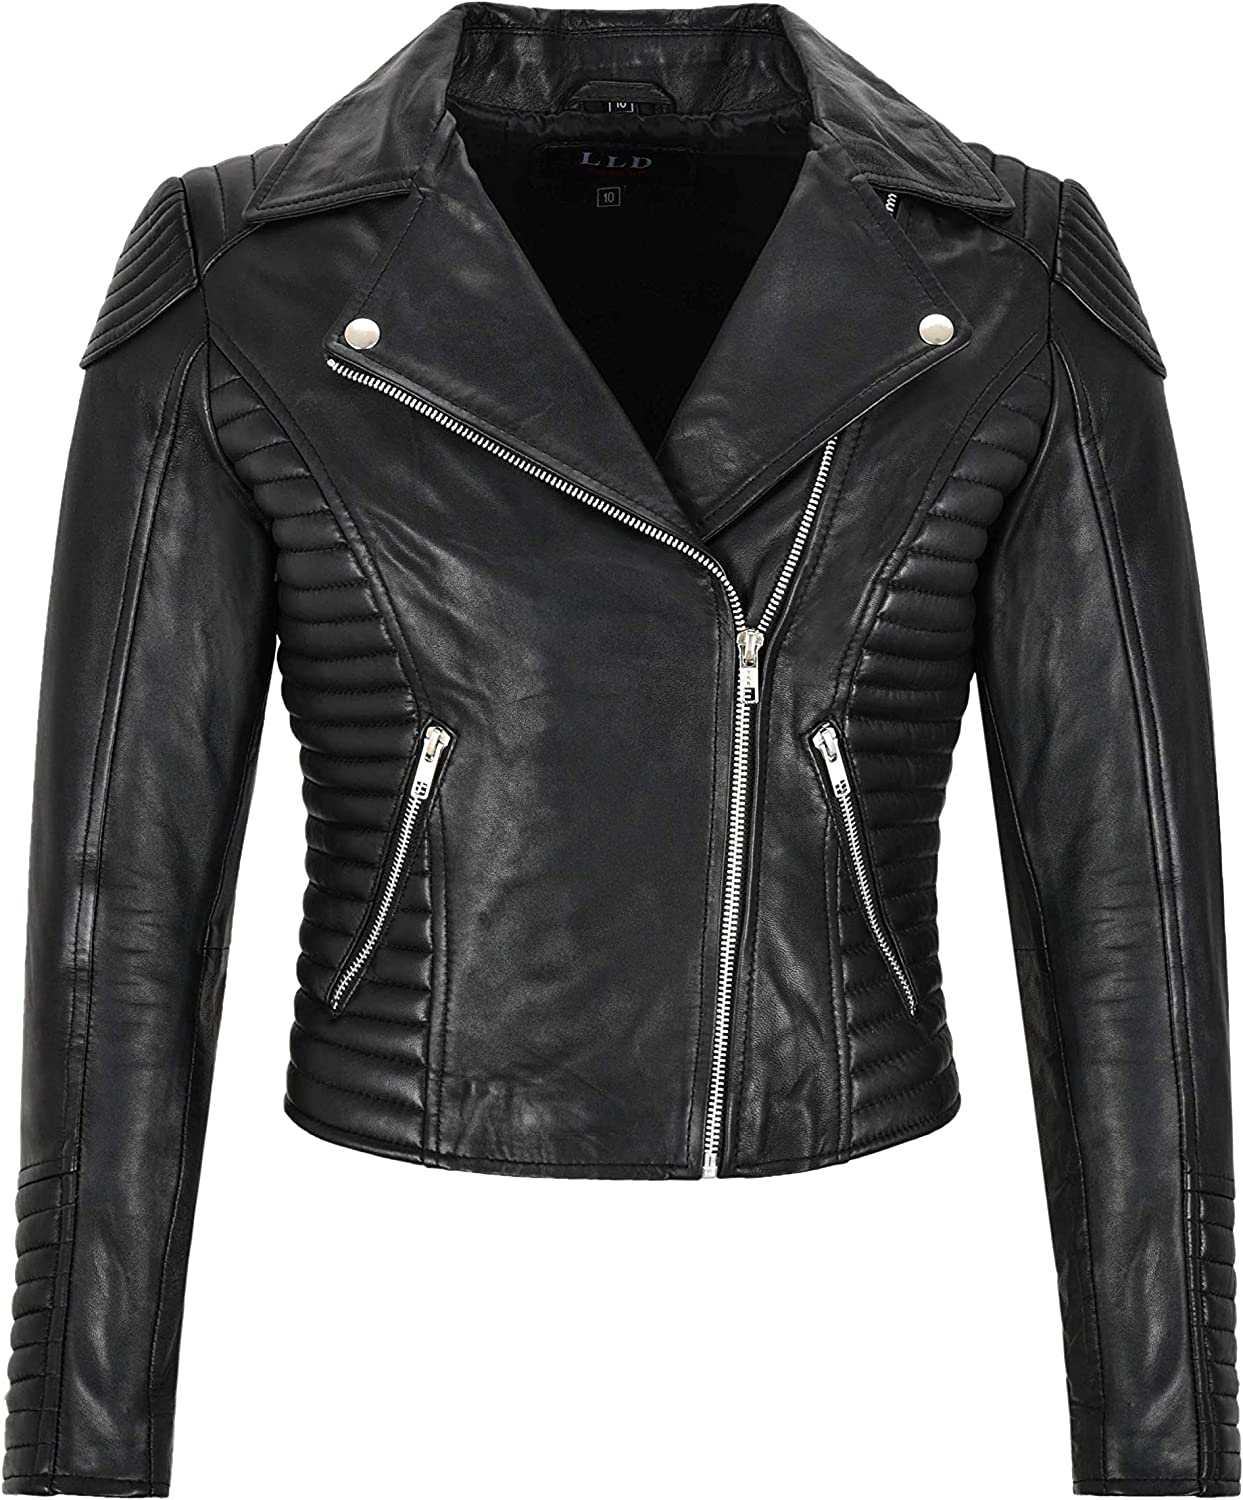 Carrie CH Hoxton Ladies Real Leather Jacket Classic Fashion Quilted Design Biker Style L21687